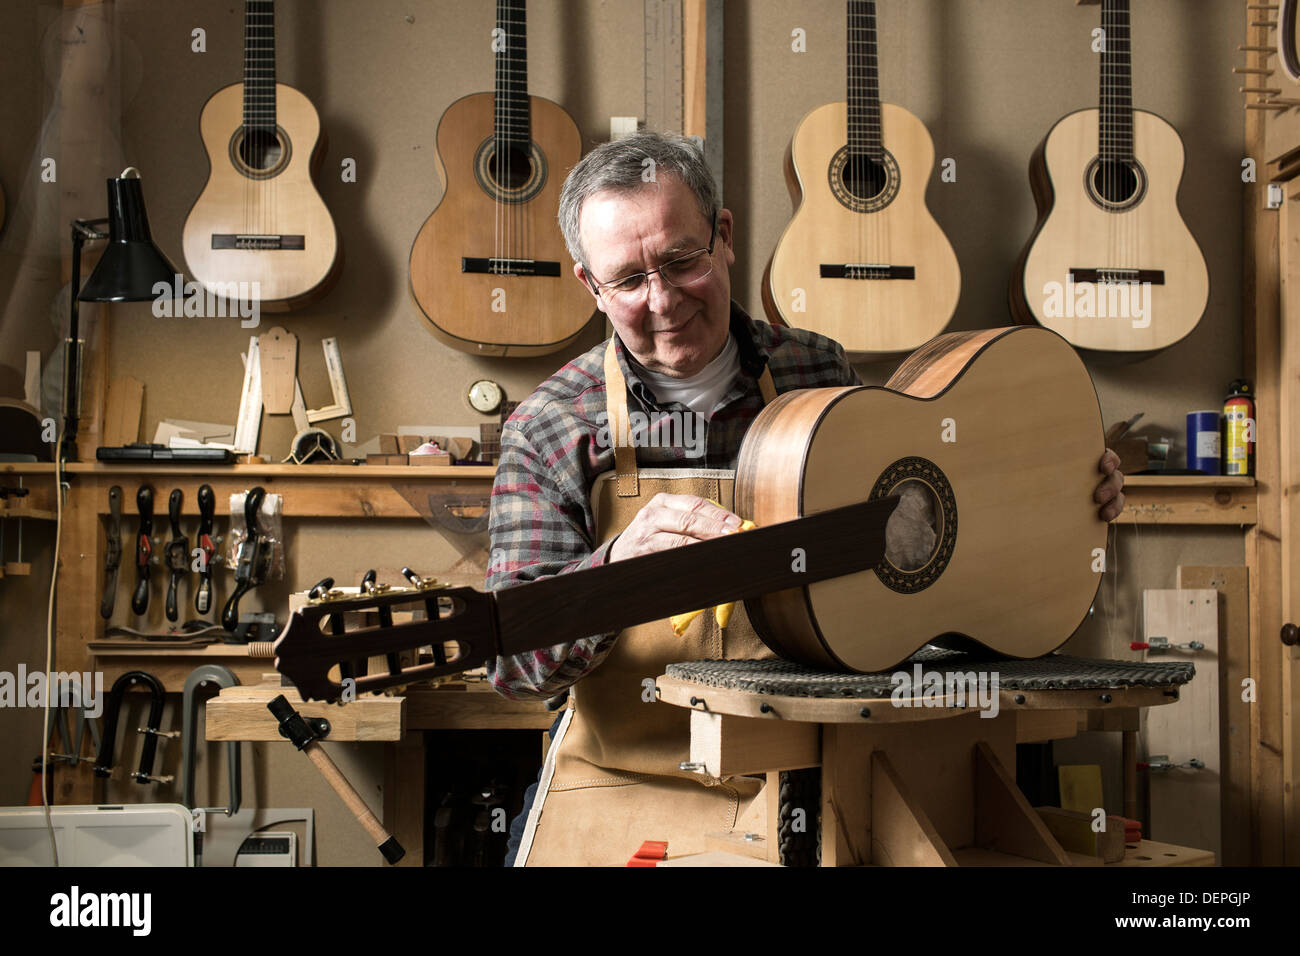 Guitar maker finishing acoustic guitar in workshop - Stock Image